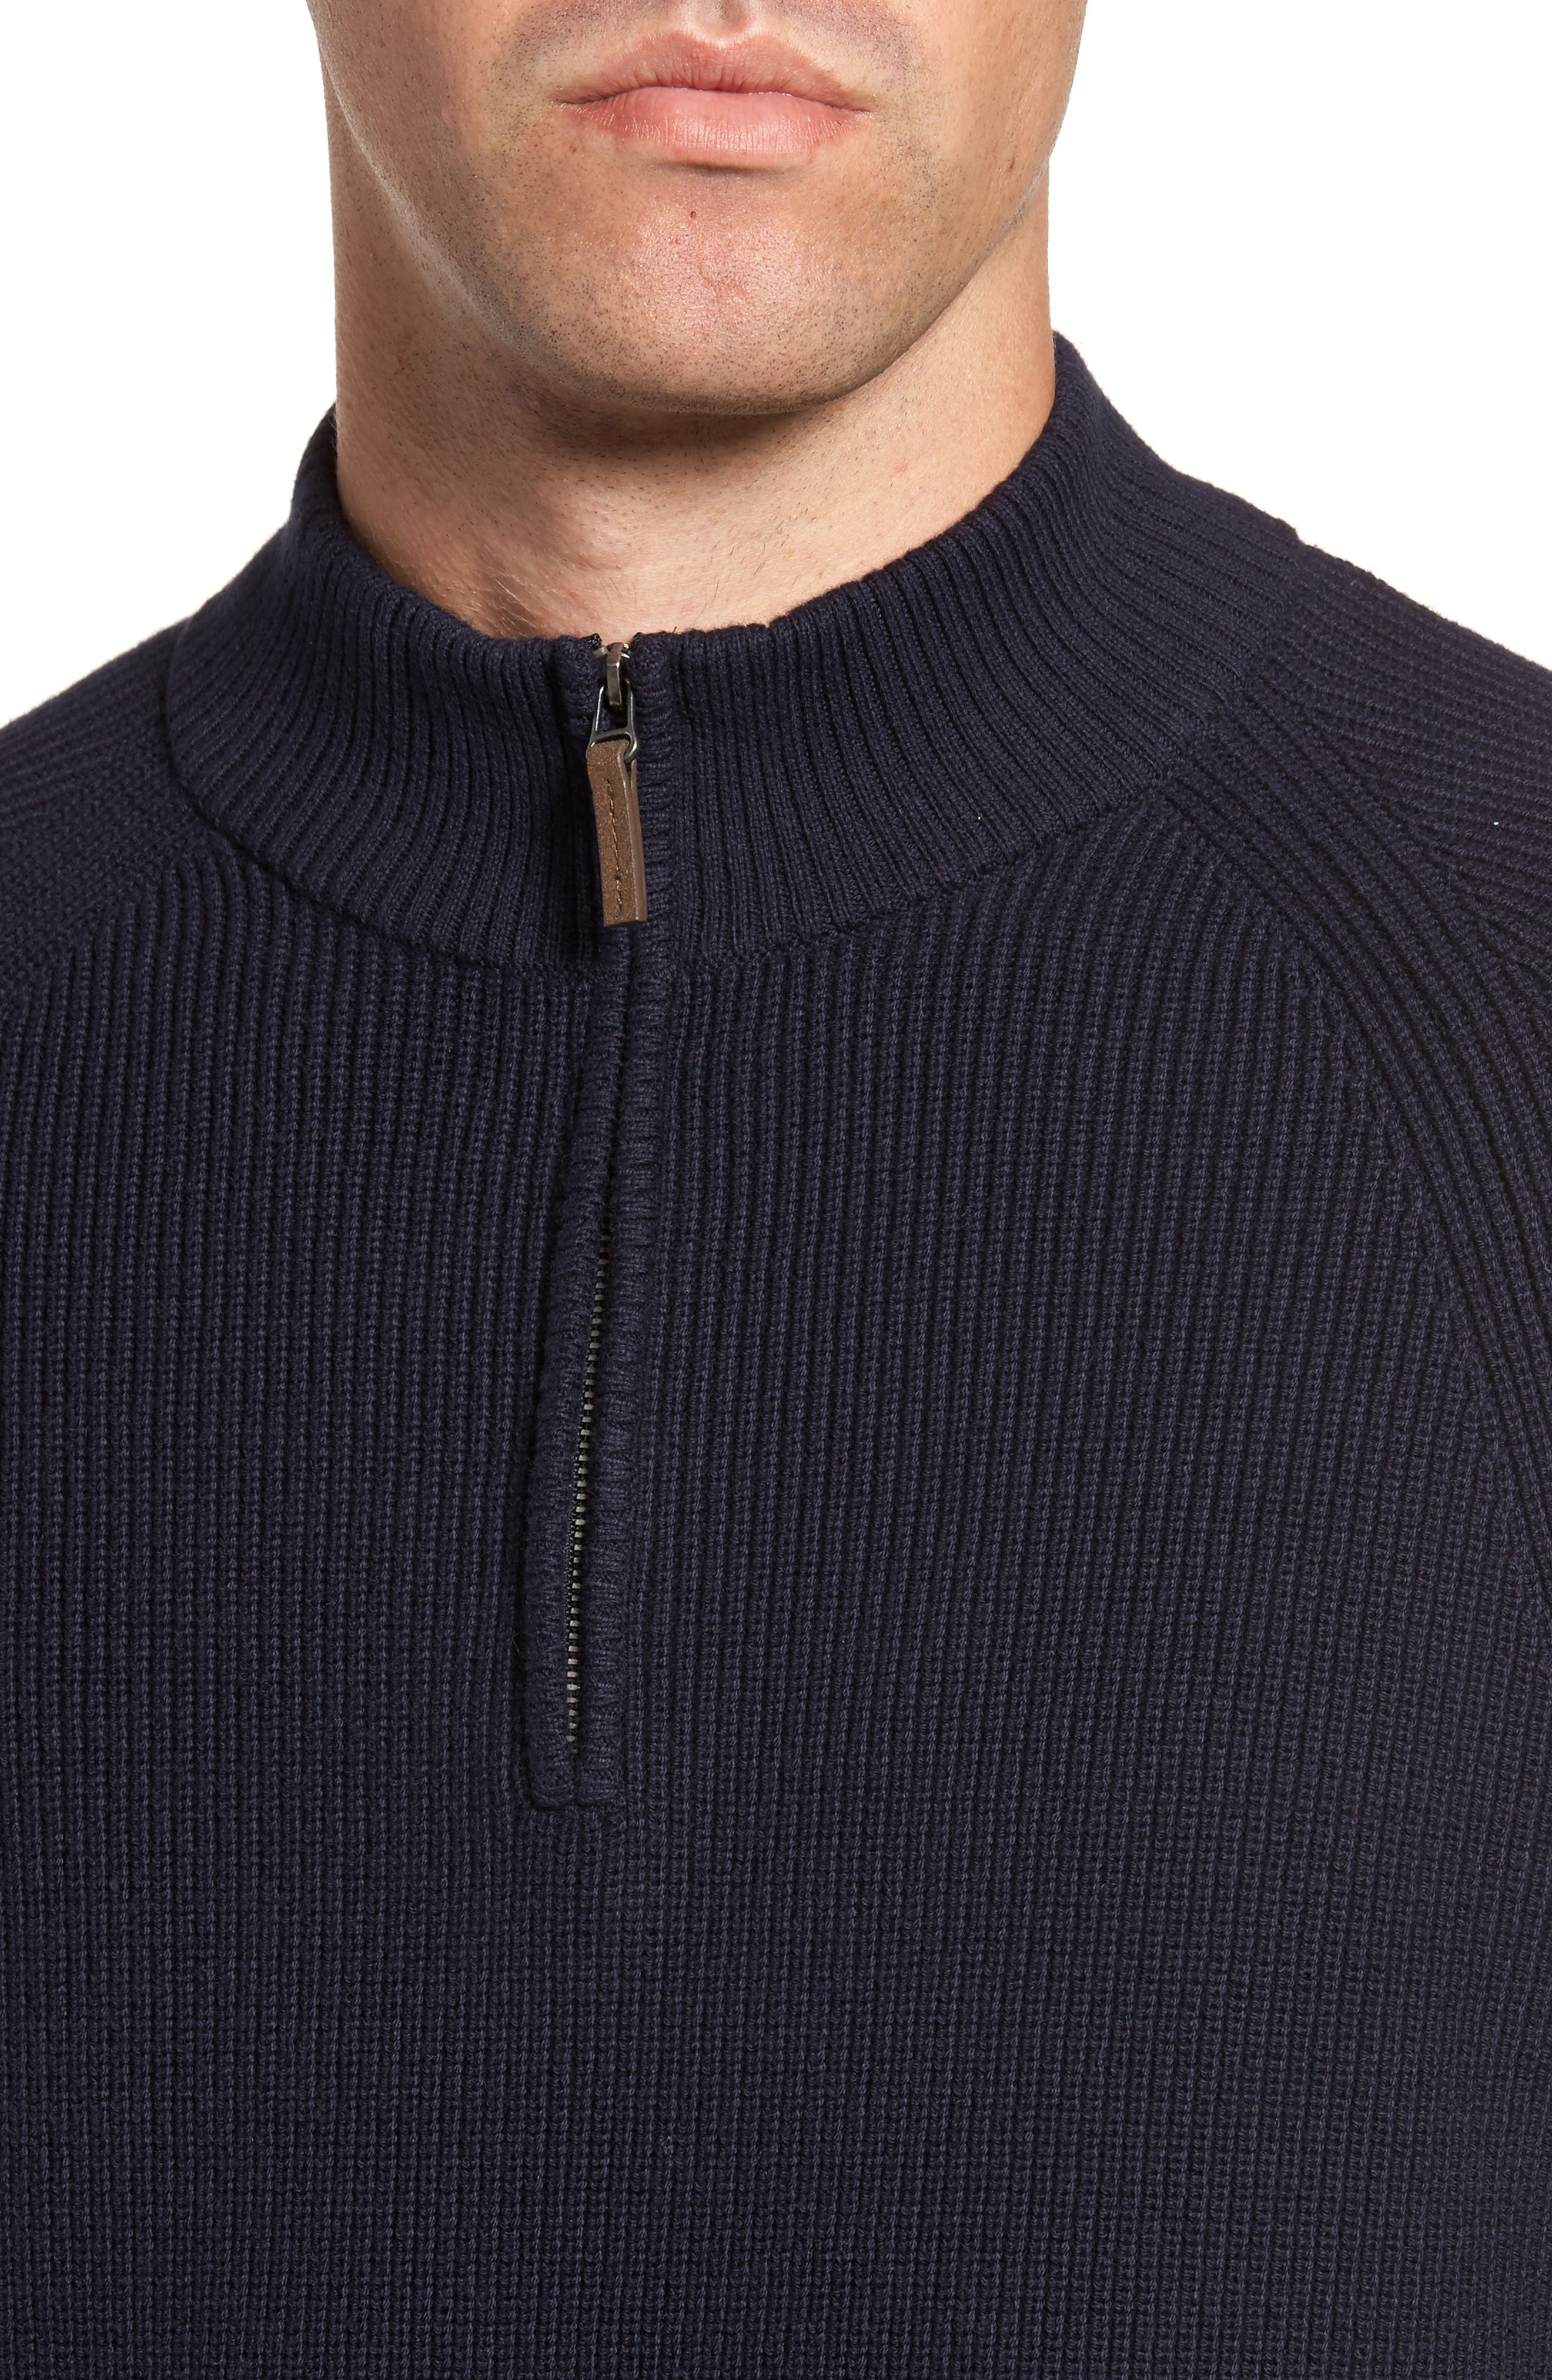 Ribbed Quarter Zip Sweater,                             Alternate thumbnail 4, color,                             Navy Night